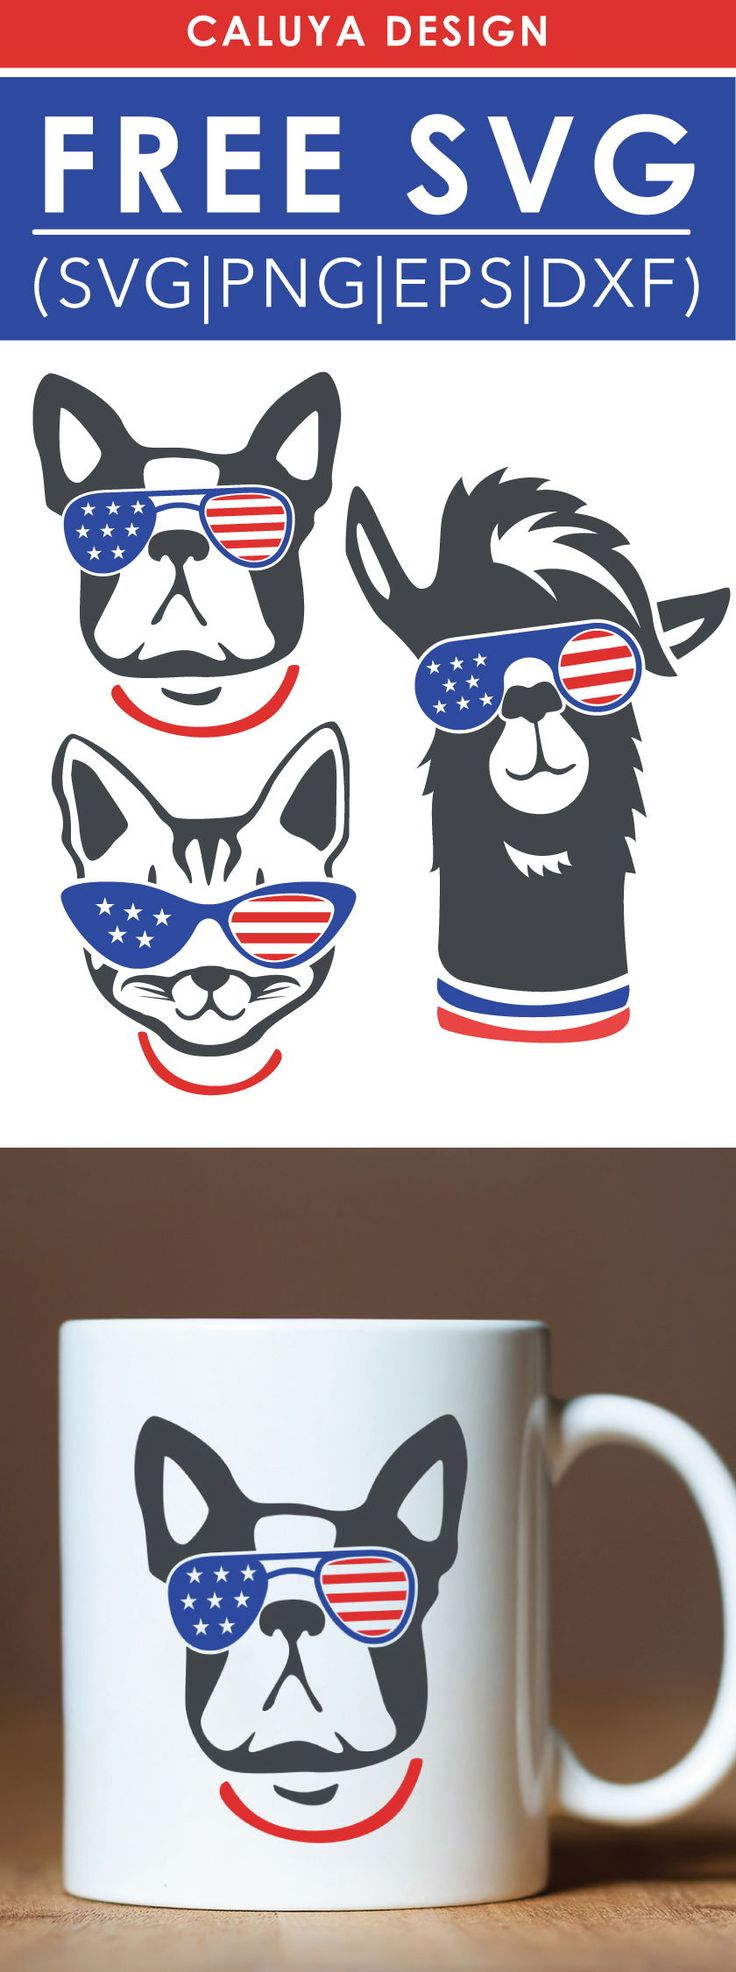 Free American Animals SVG, PNG, EPS & DXF by